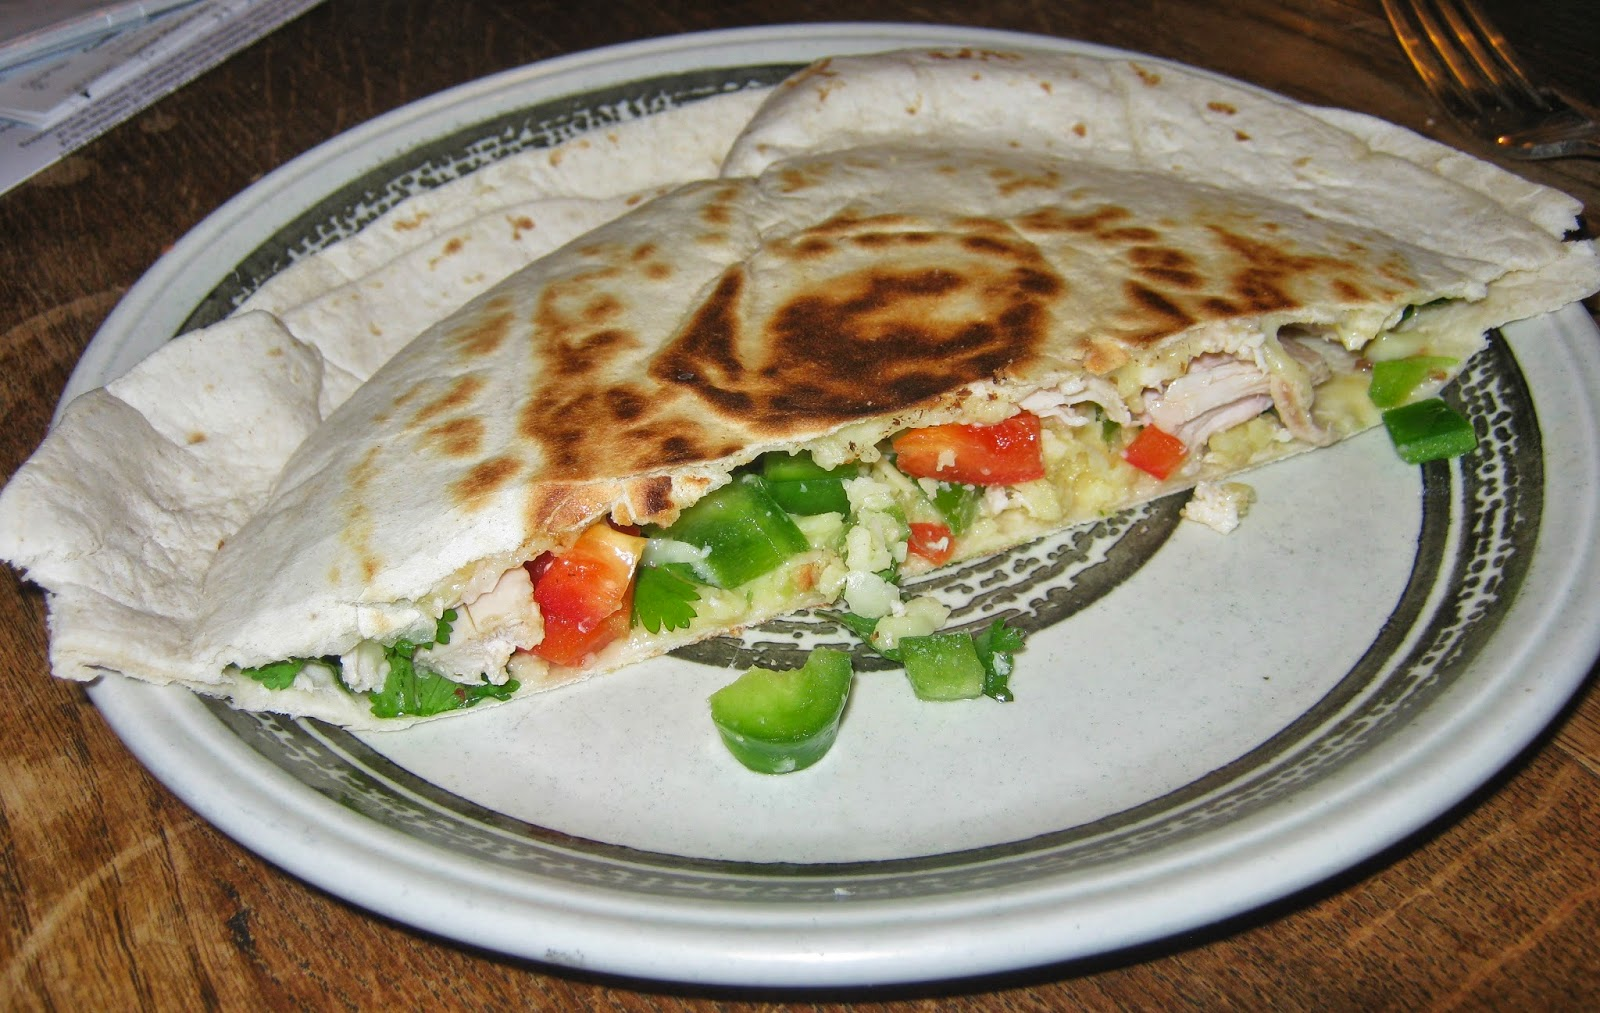 Inside the quesadilla